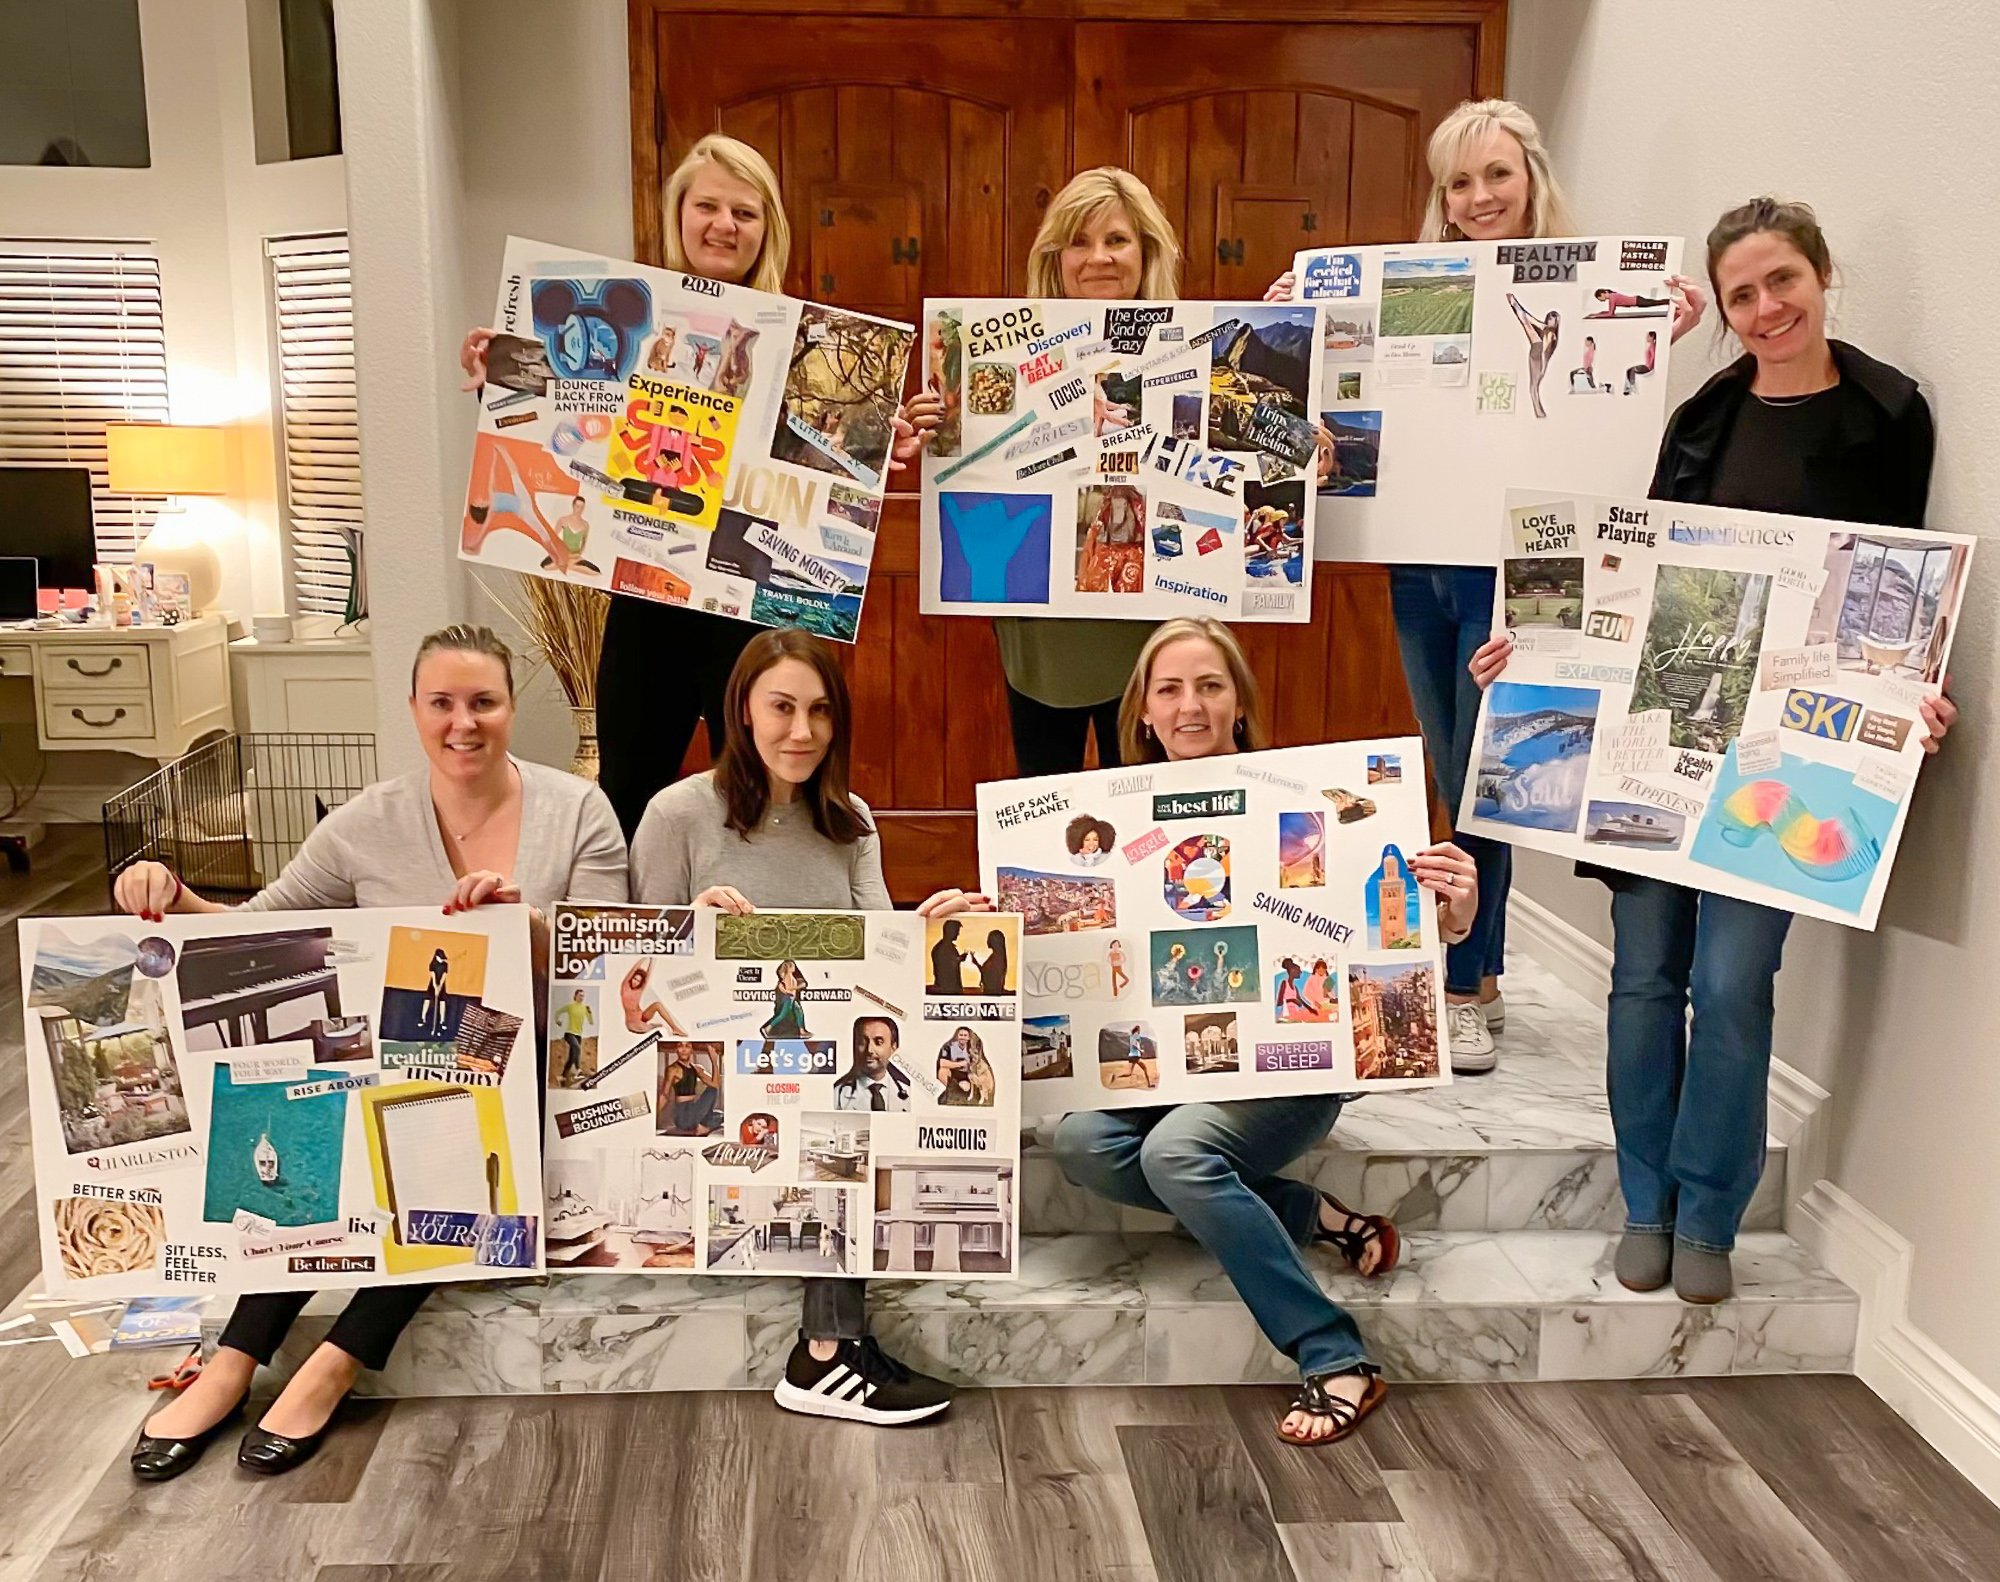 Vision board party results